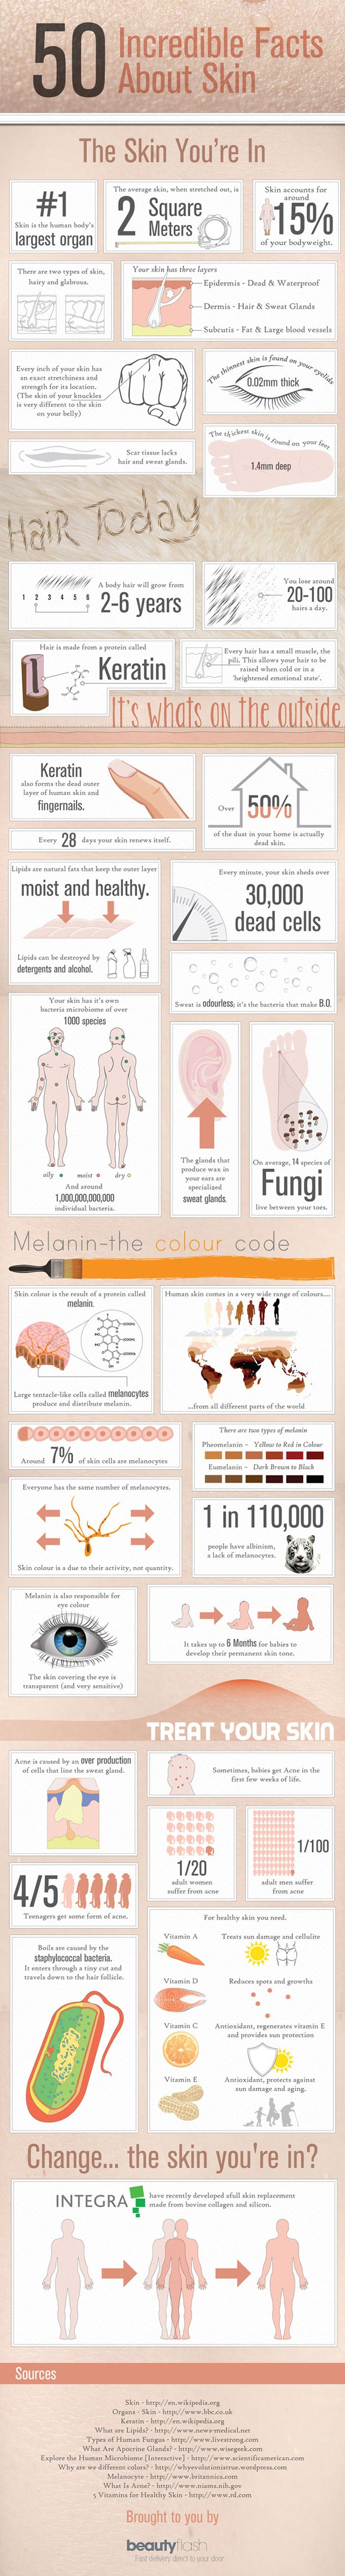 50 Incredible Facts About Skin (Infographic) I am not crazy about infographics, but they…